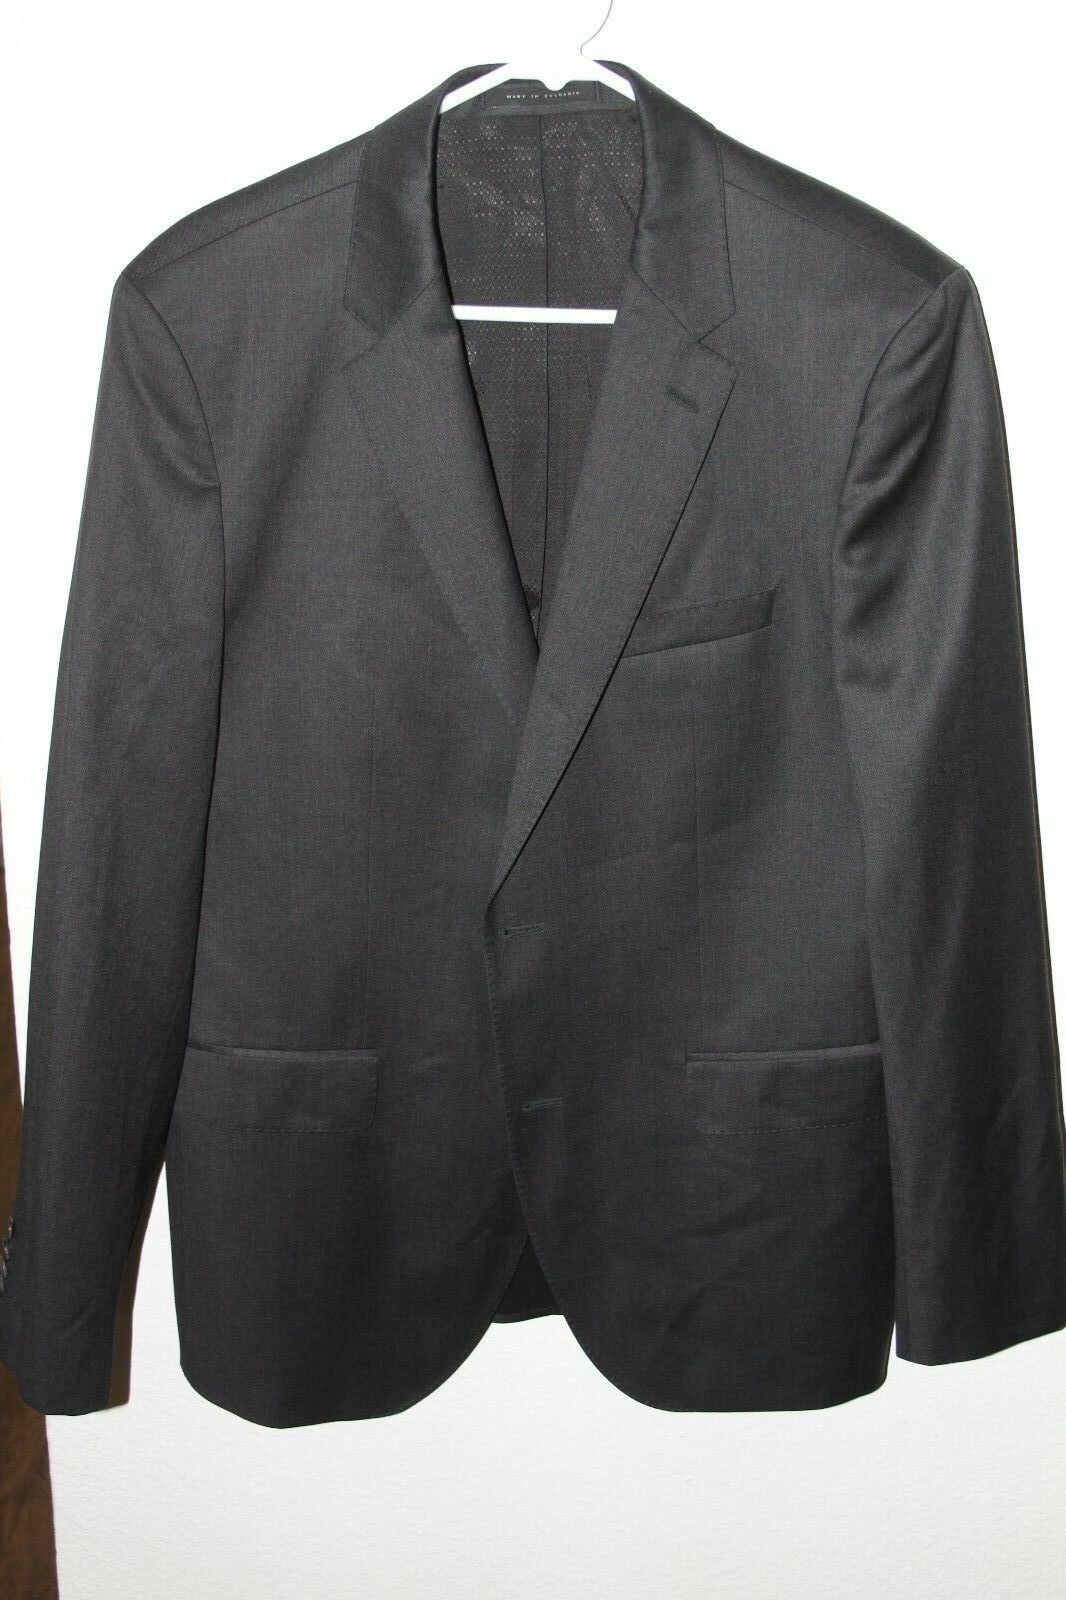 HUGO BOSS Johnston Lenon Charcoal Sport Coat Blazer 40 R NWOT